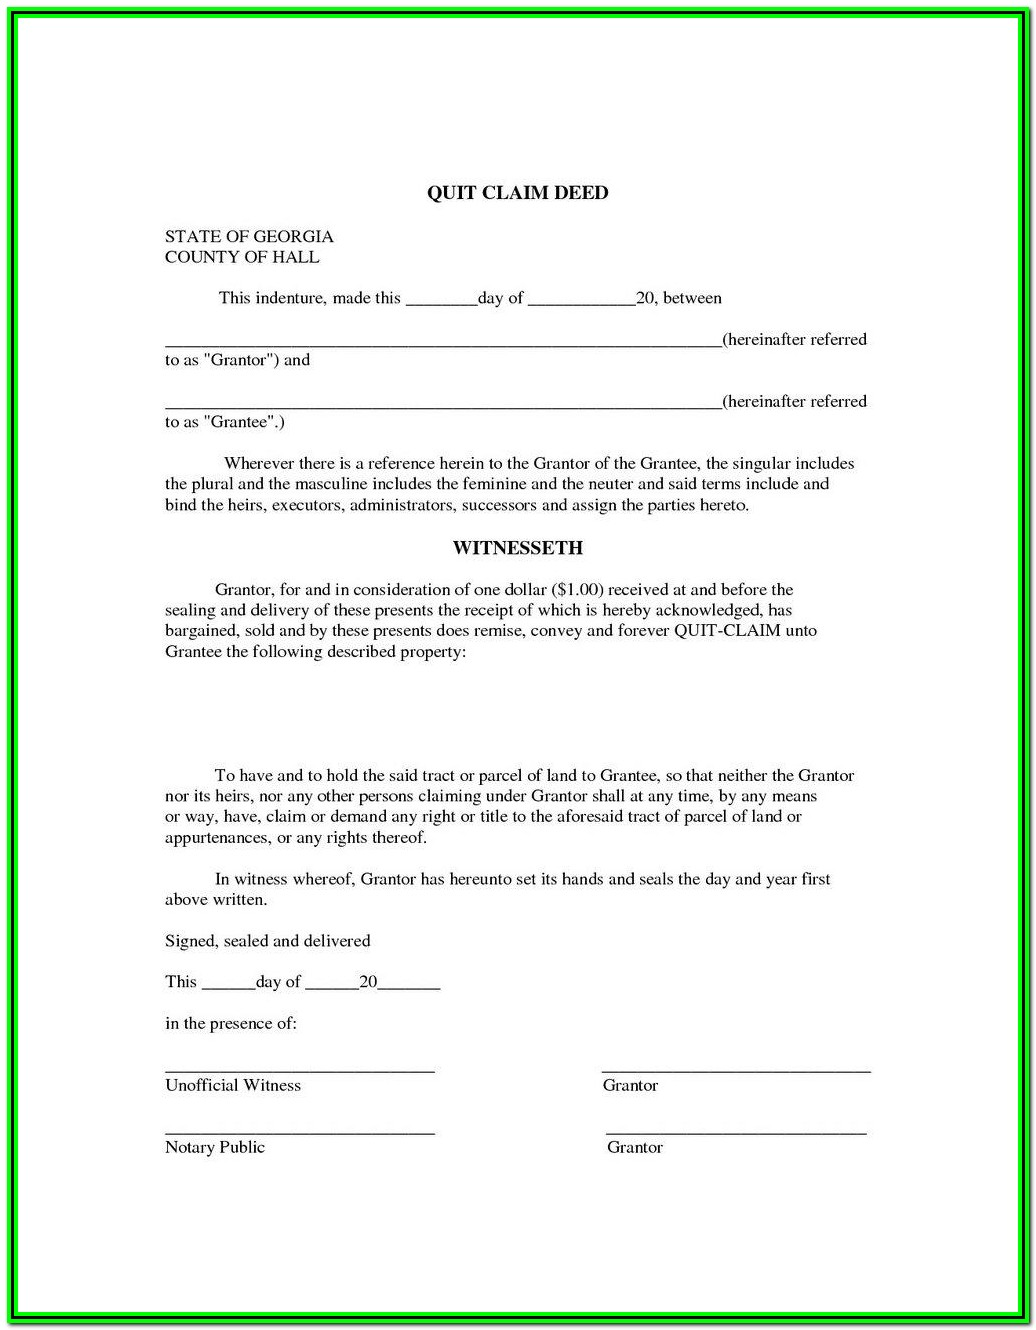 Florida Quit Claim Deed Form For Timeshare